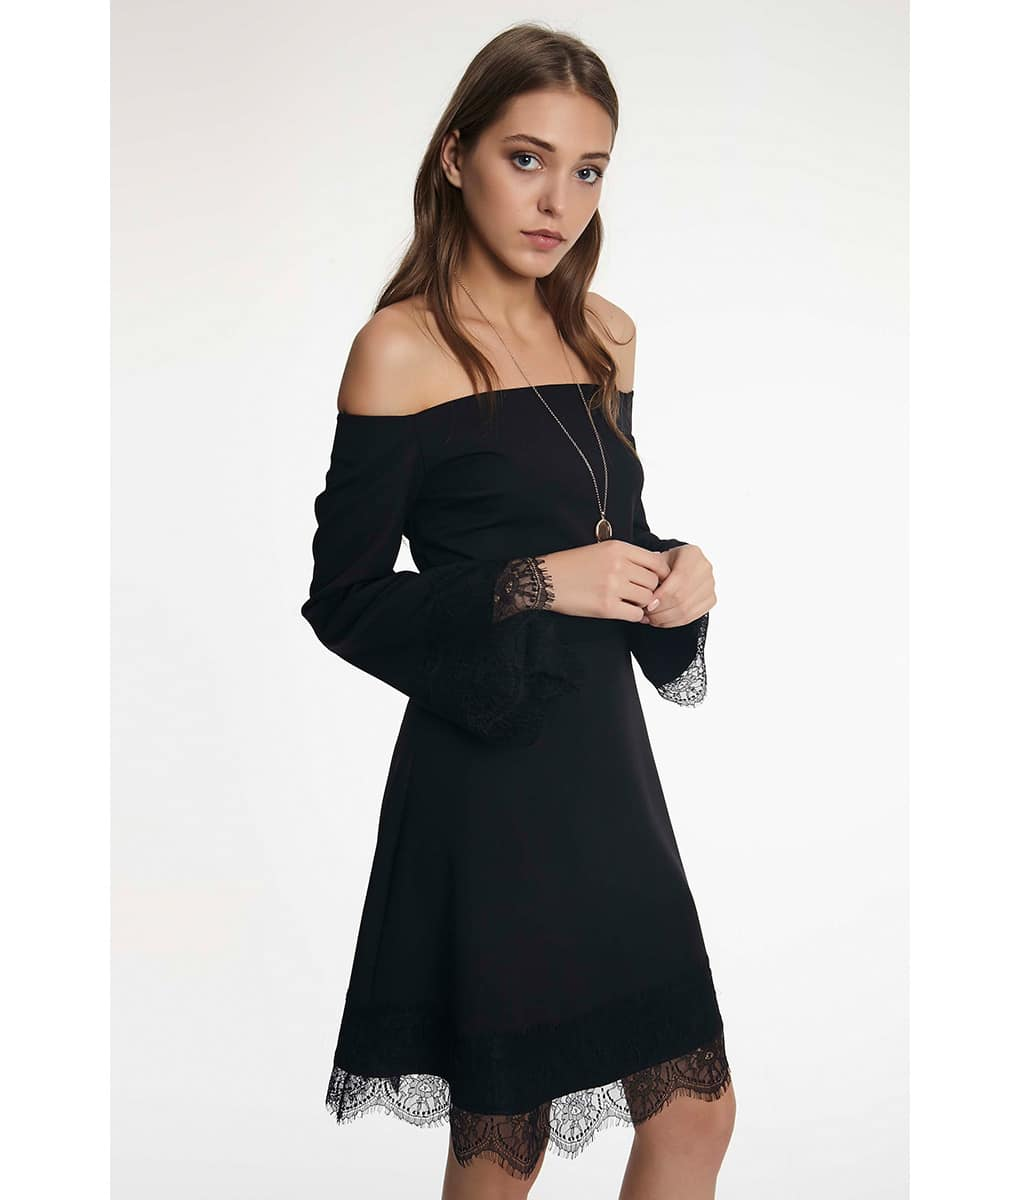 Alila-Black-off-the-shoulder-lace-trim-dress-Setre-detail